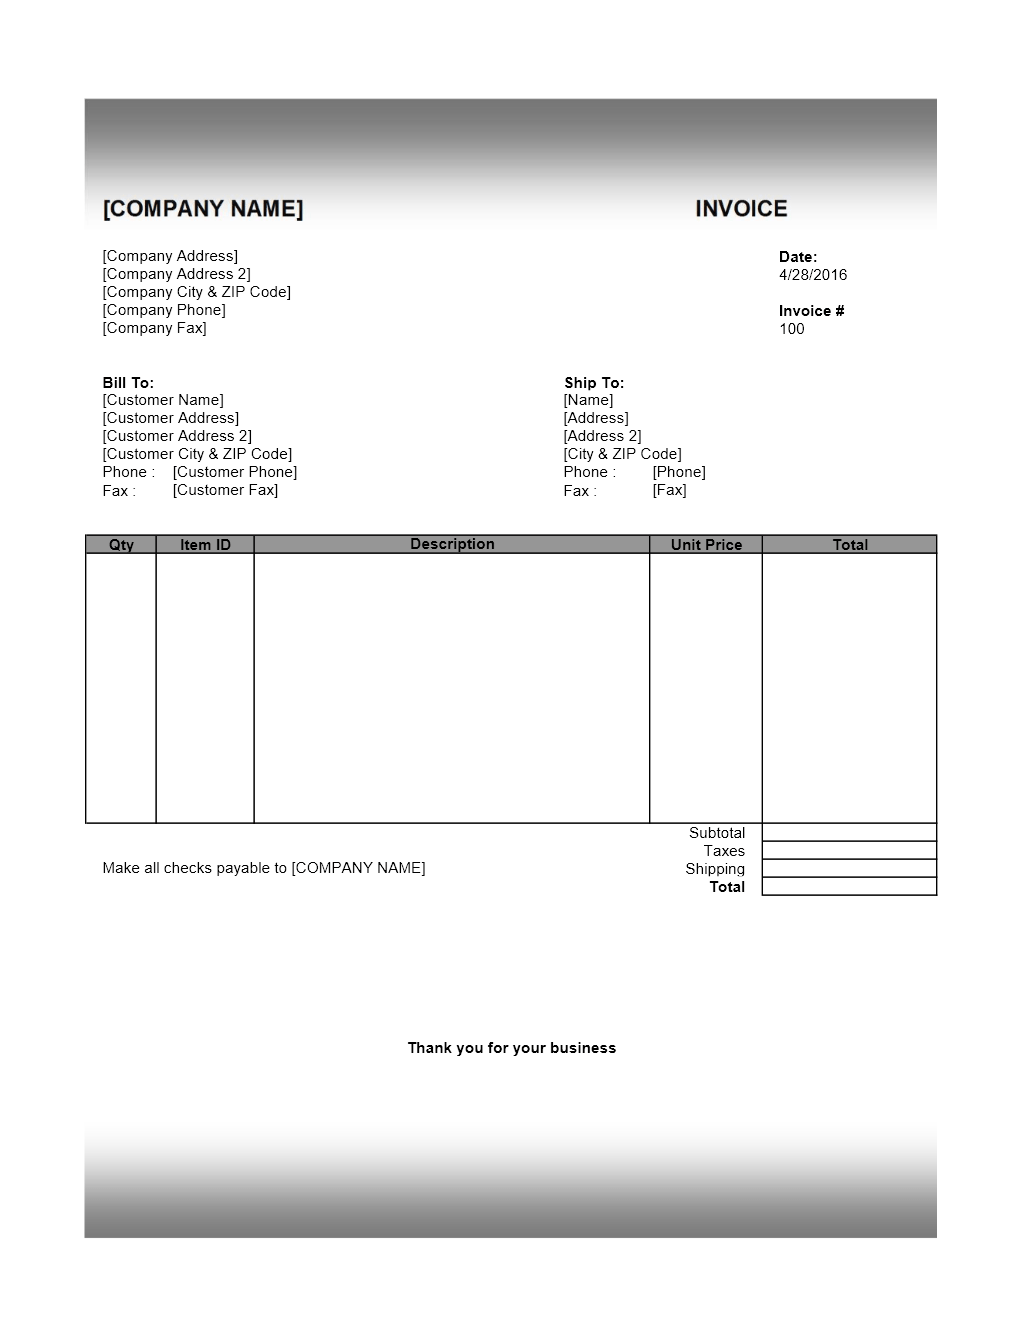 invoice template office. format free. invoice template office xlsx, Invoice templates